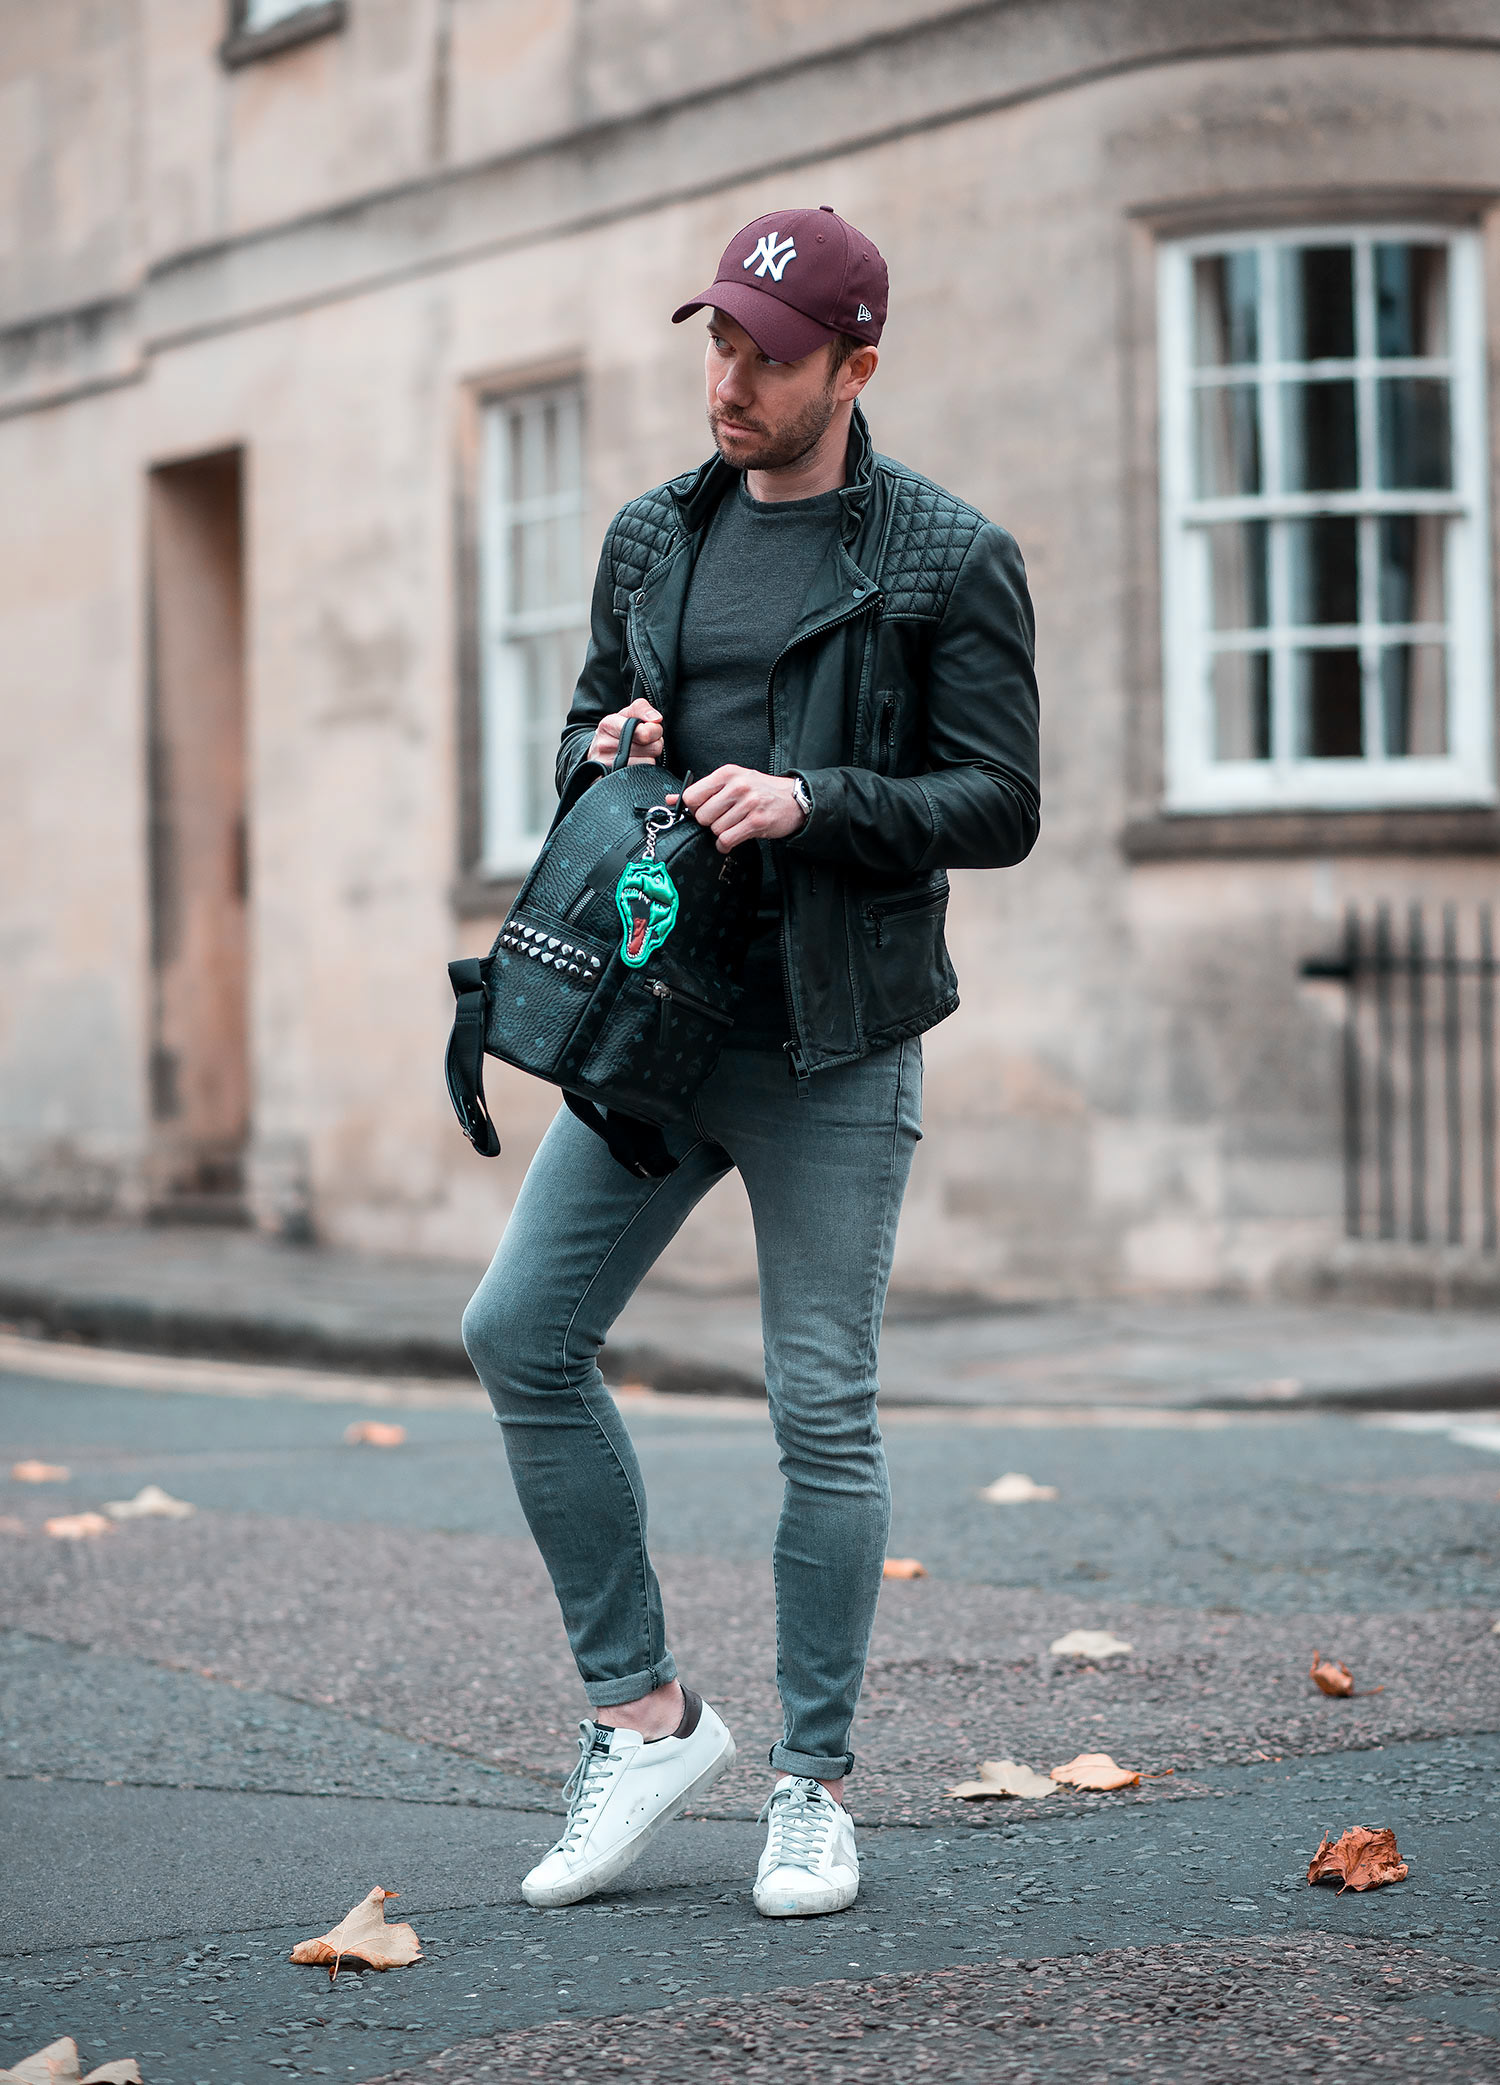 Allsaints Cargo Leather Jacket and MCM Backpack Outfit Combination ... f2711f3820a